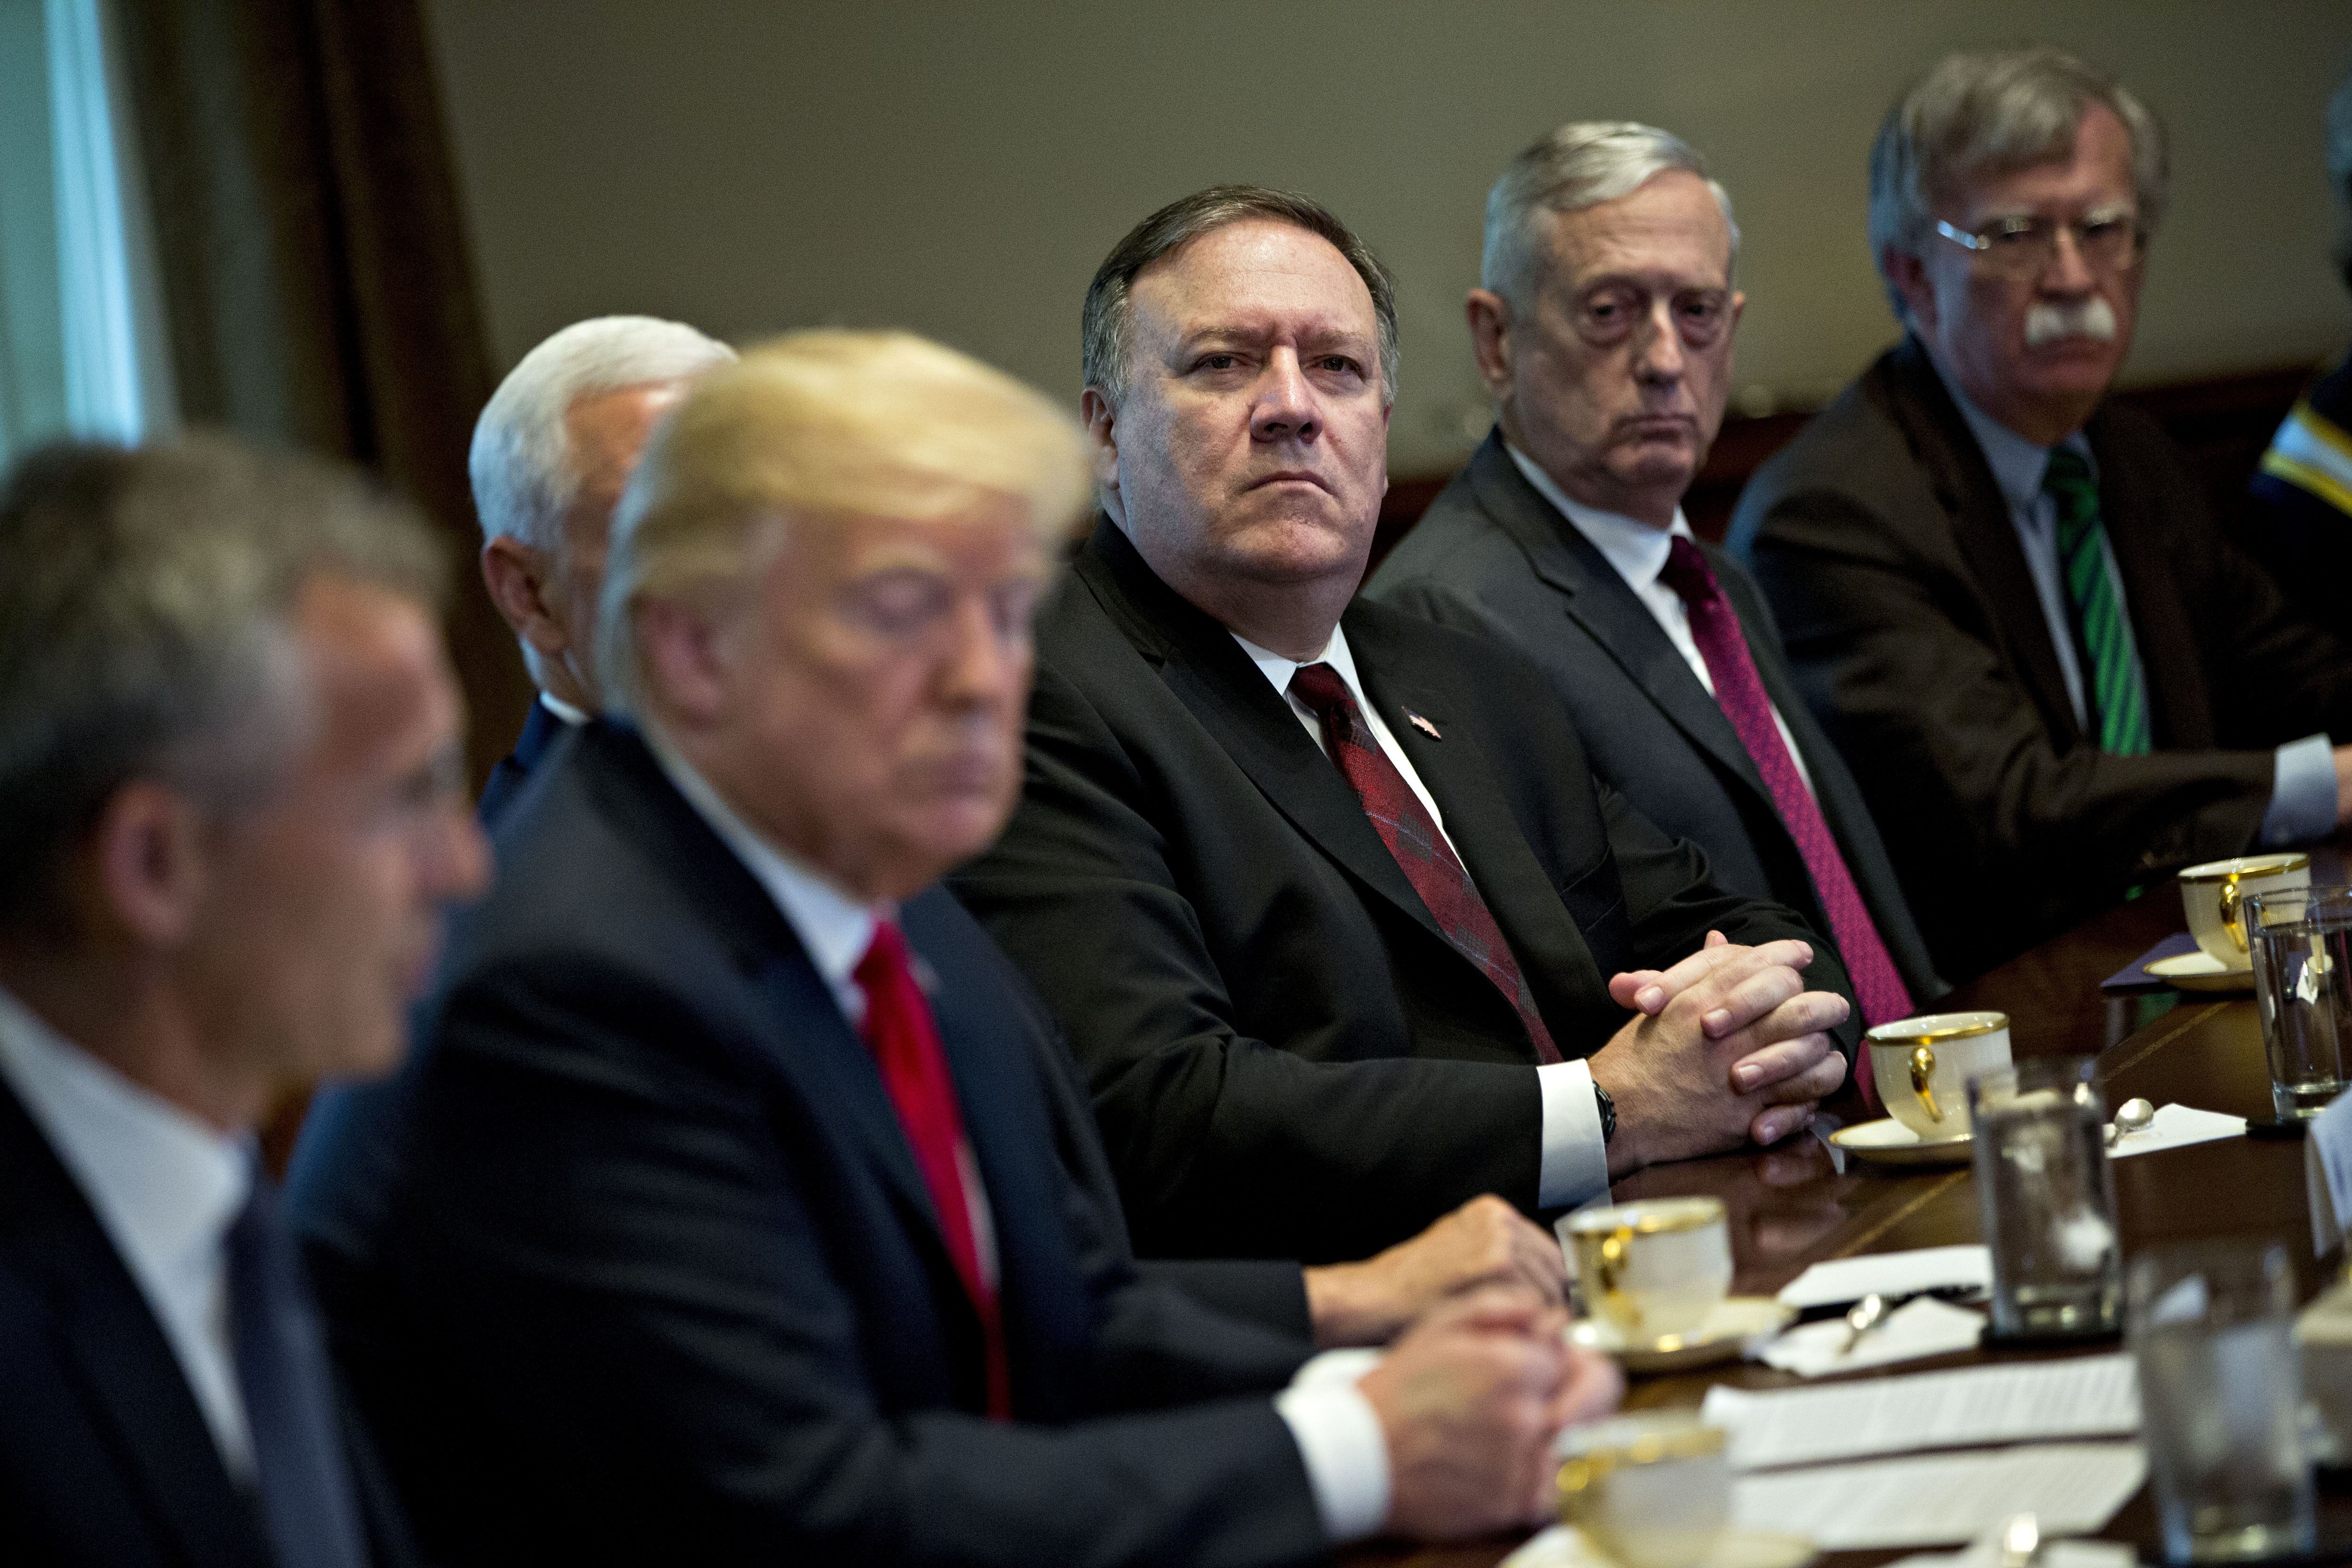 WASHINGTON, DC - MAY 17: John Bolton, national security advisor, from right, Jim Mattis, U.S. secretary of defense, and Mike Pompeo, U.S. secretary of state, listen during a meeting with U.S. President Donald Trump, second left, and Jens Stoltenberg, secretary general of the North Atlantic Treaty Organization (NATO), left, in the Cabinet Room of the White House May 17, 2018 in Washington, DC. The White House said the two leaders will be discussing the upcoming NATO Summit in July. (Photo by Andrew Harrer-Pool/Getty Images)